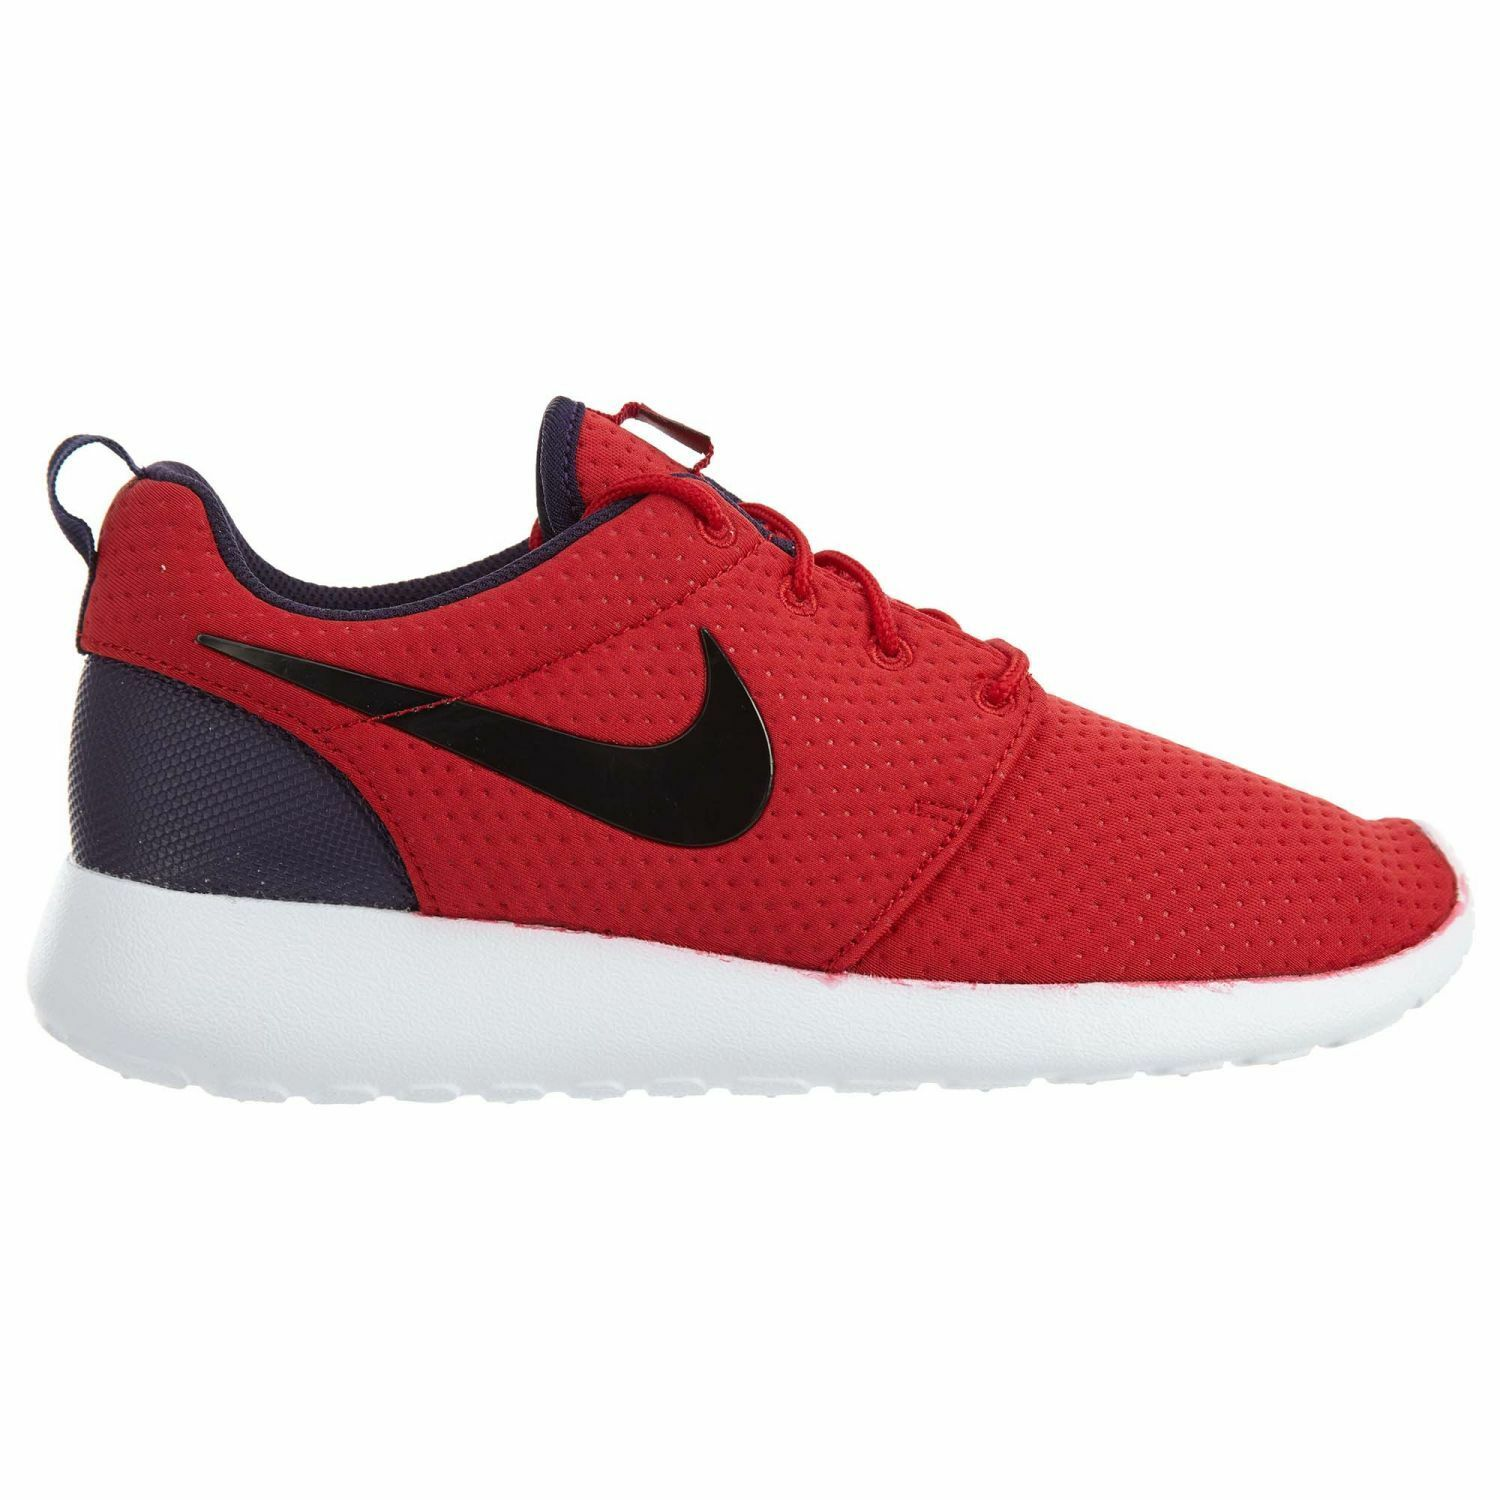 Nike Roshe One SE Mens 844687-600 Gym Red Purple Dynasty Running shoes Size 8.5